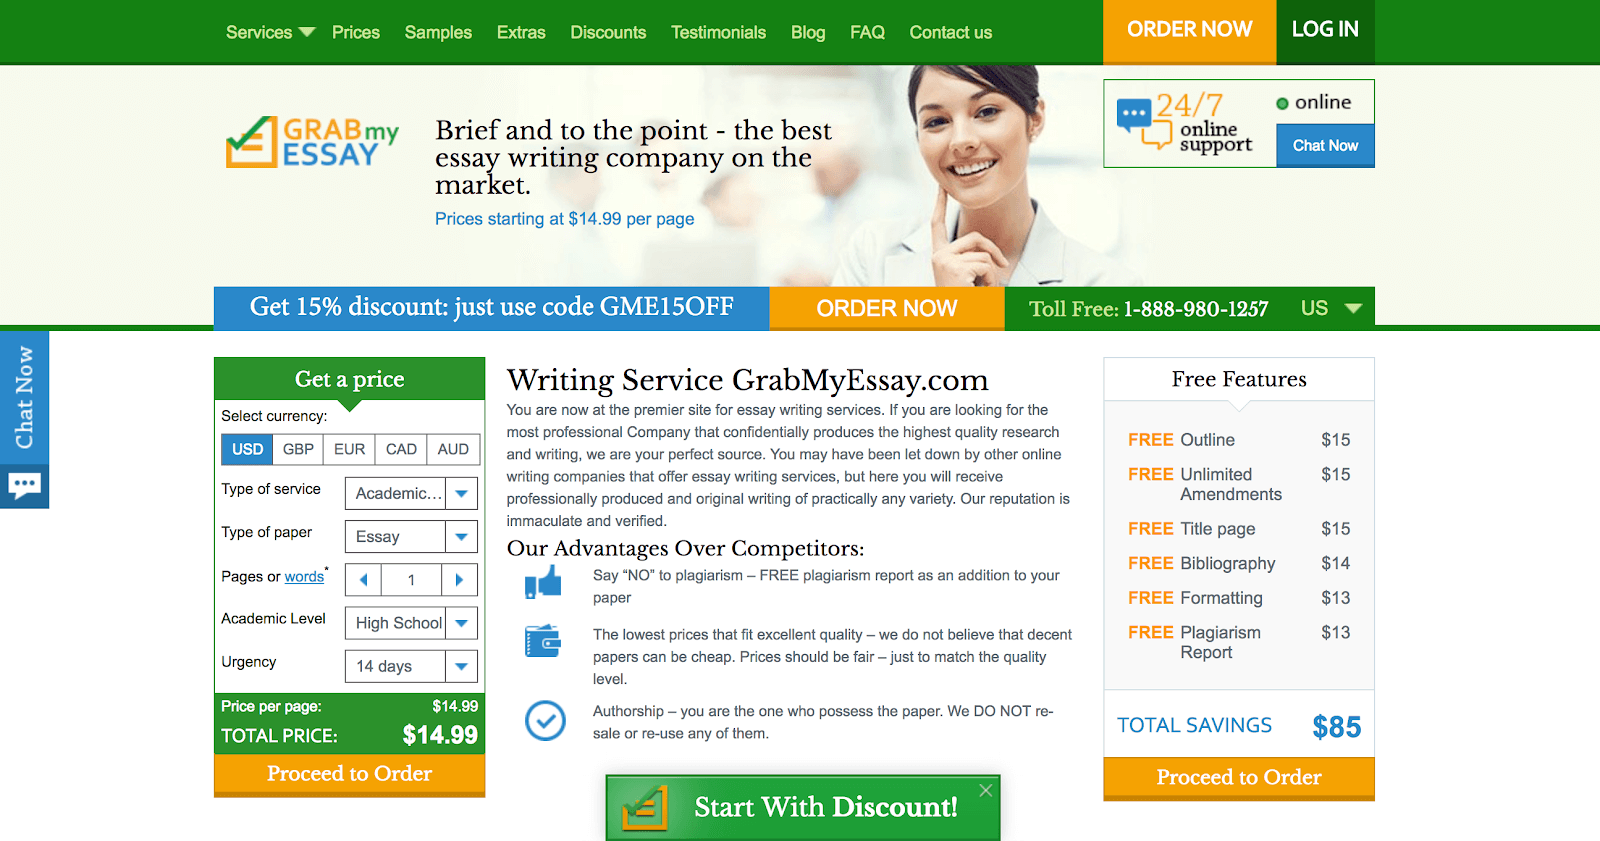 grabmyessay home page review